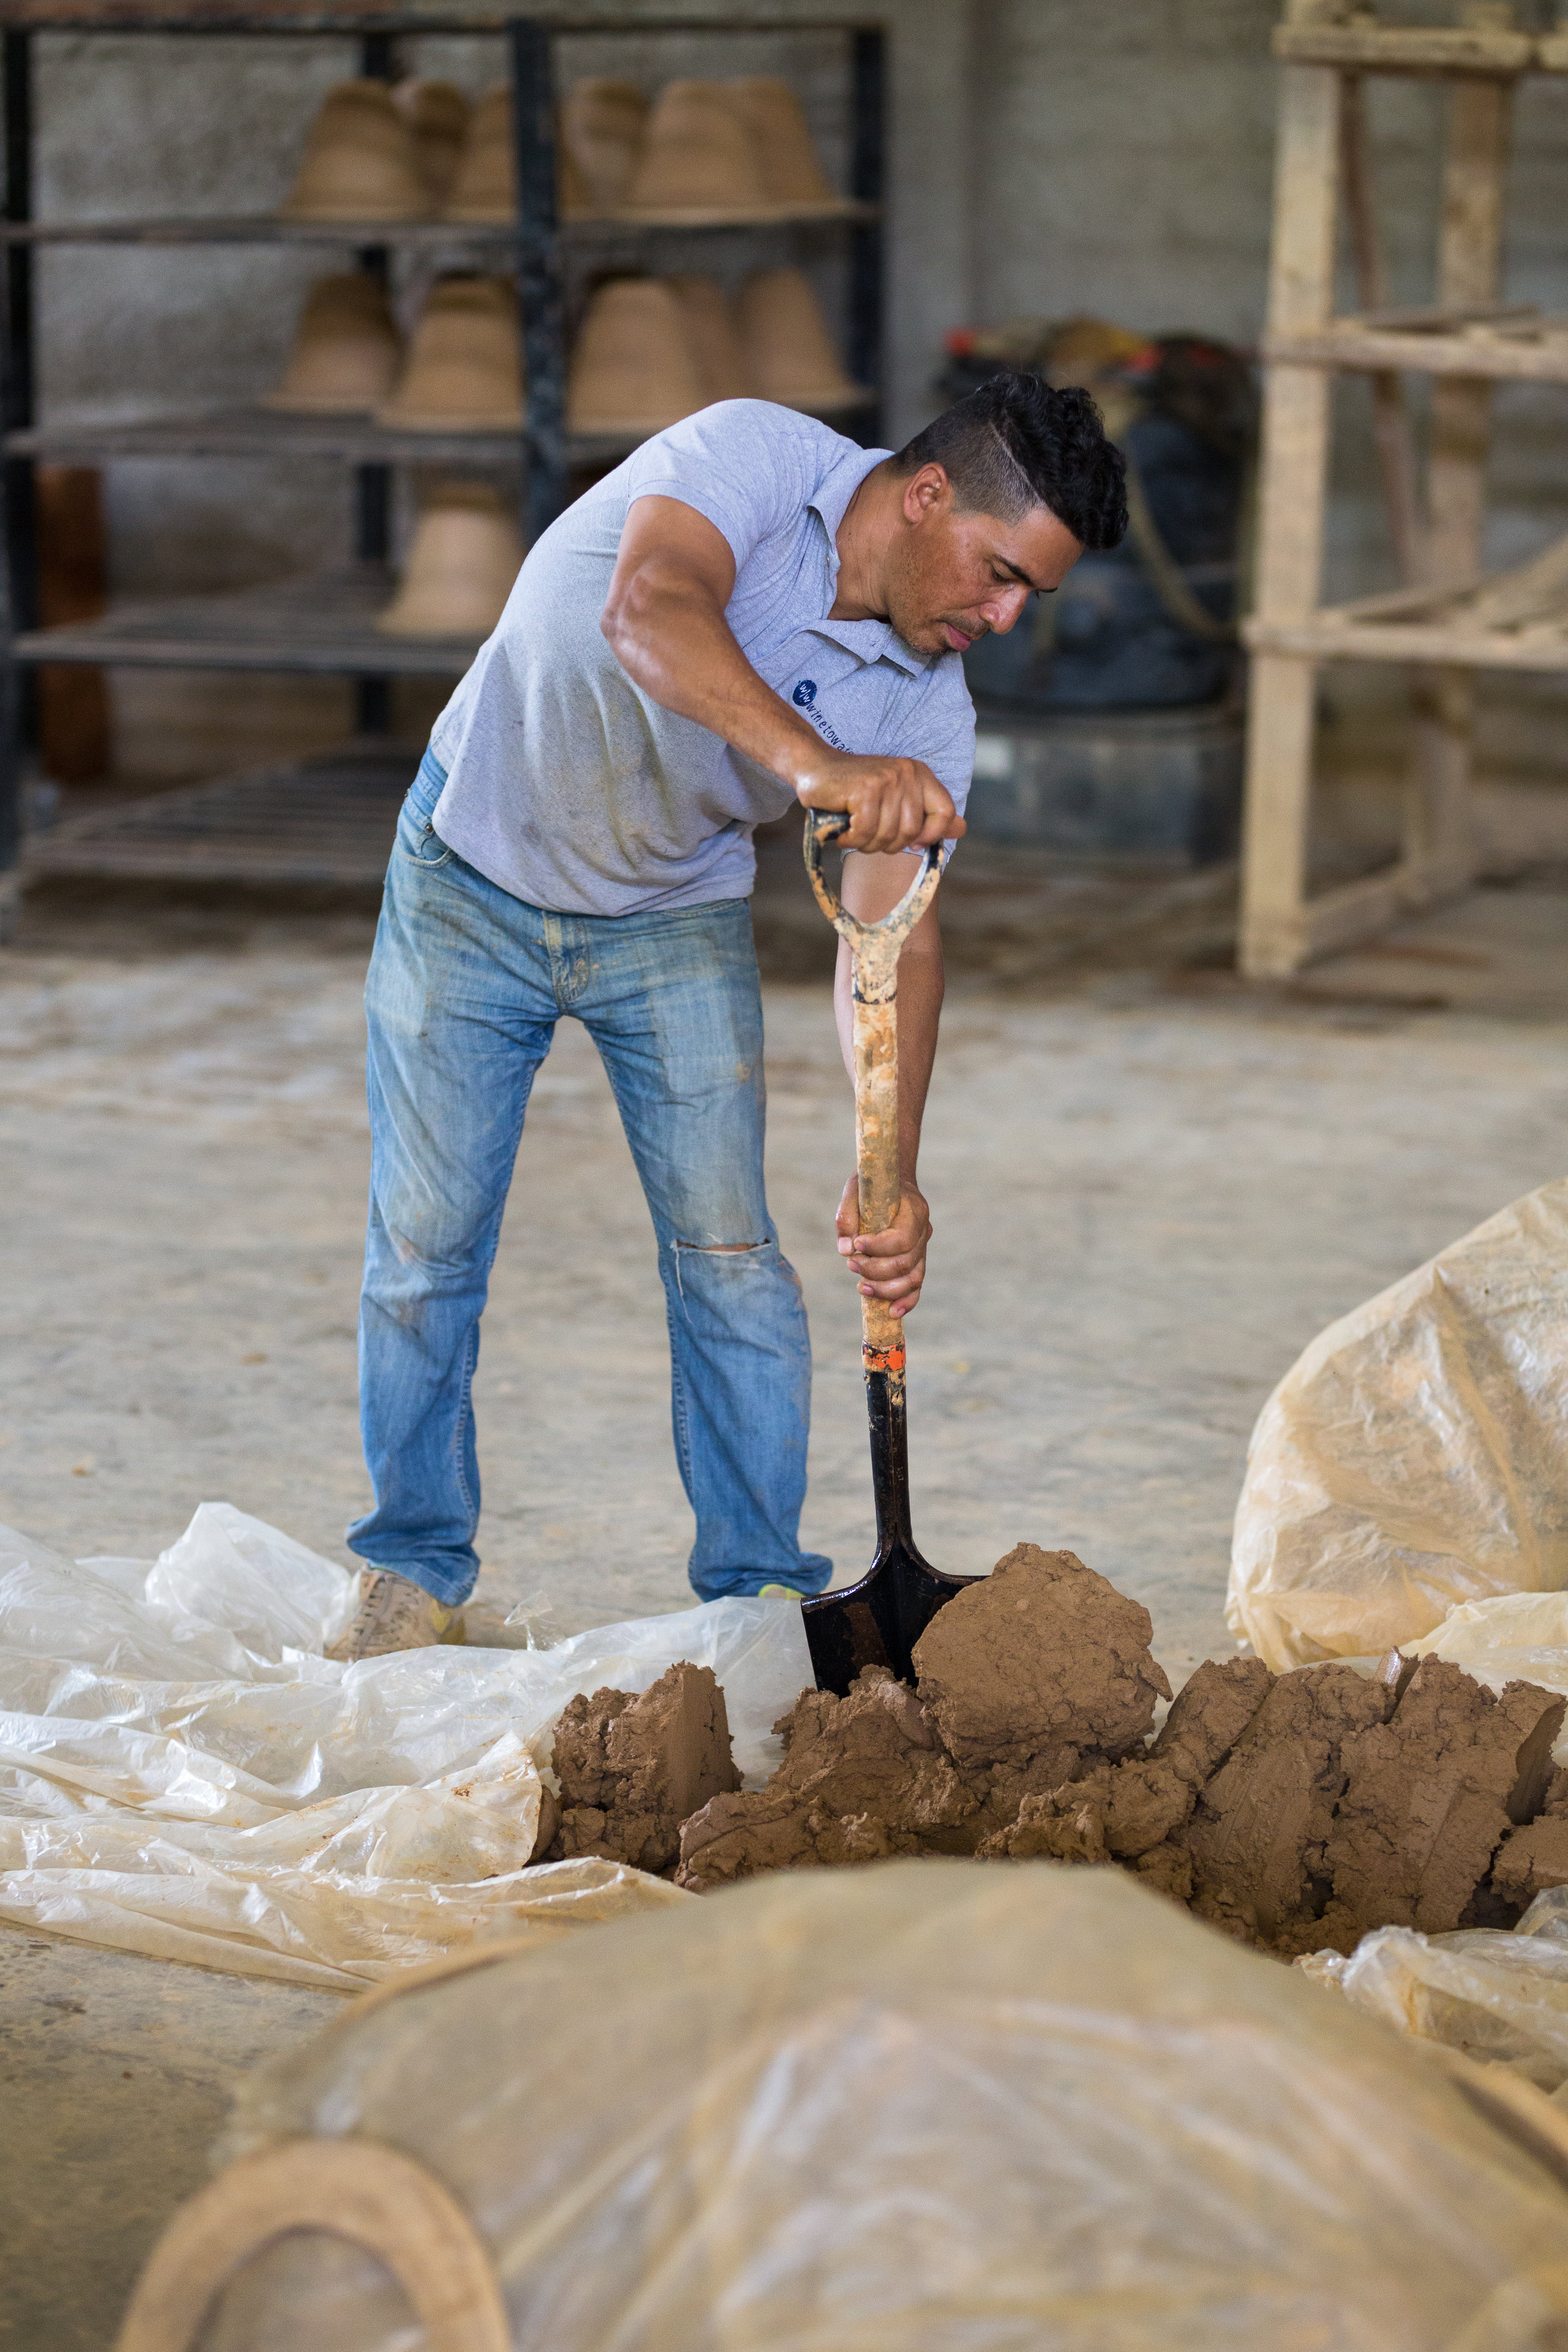 Domingo Guzman, DR Factory Manager, prepares the clay that will be used to make the ceramic filters.